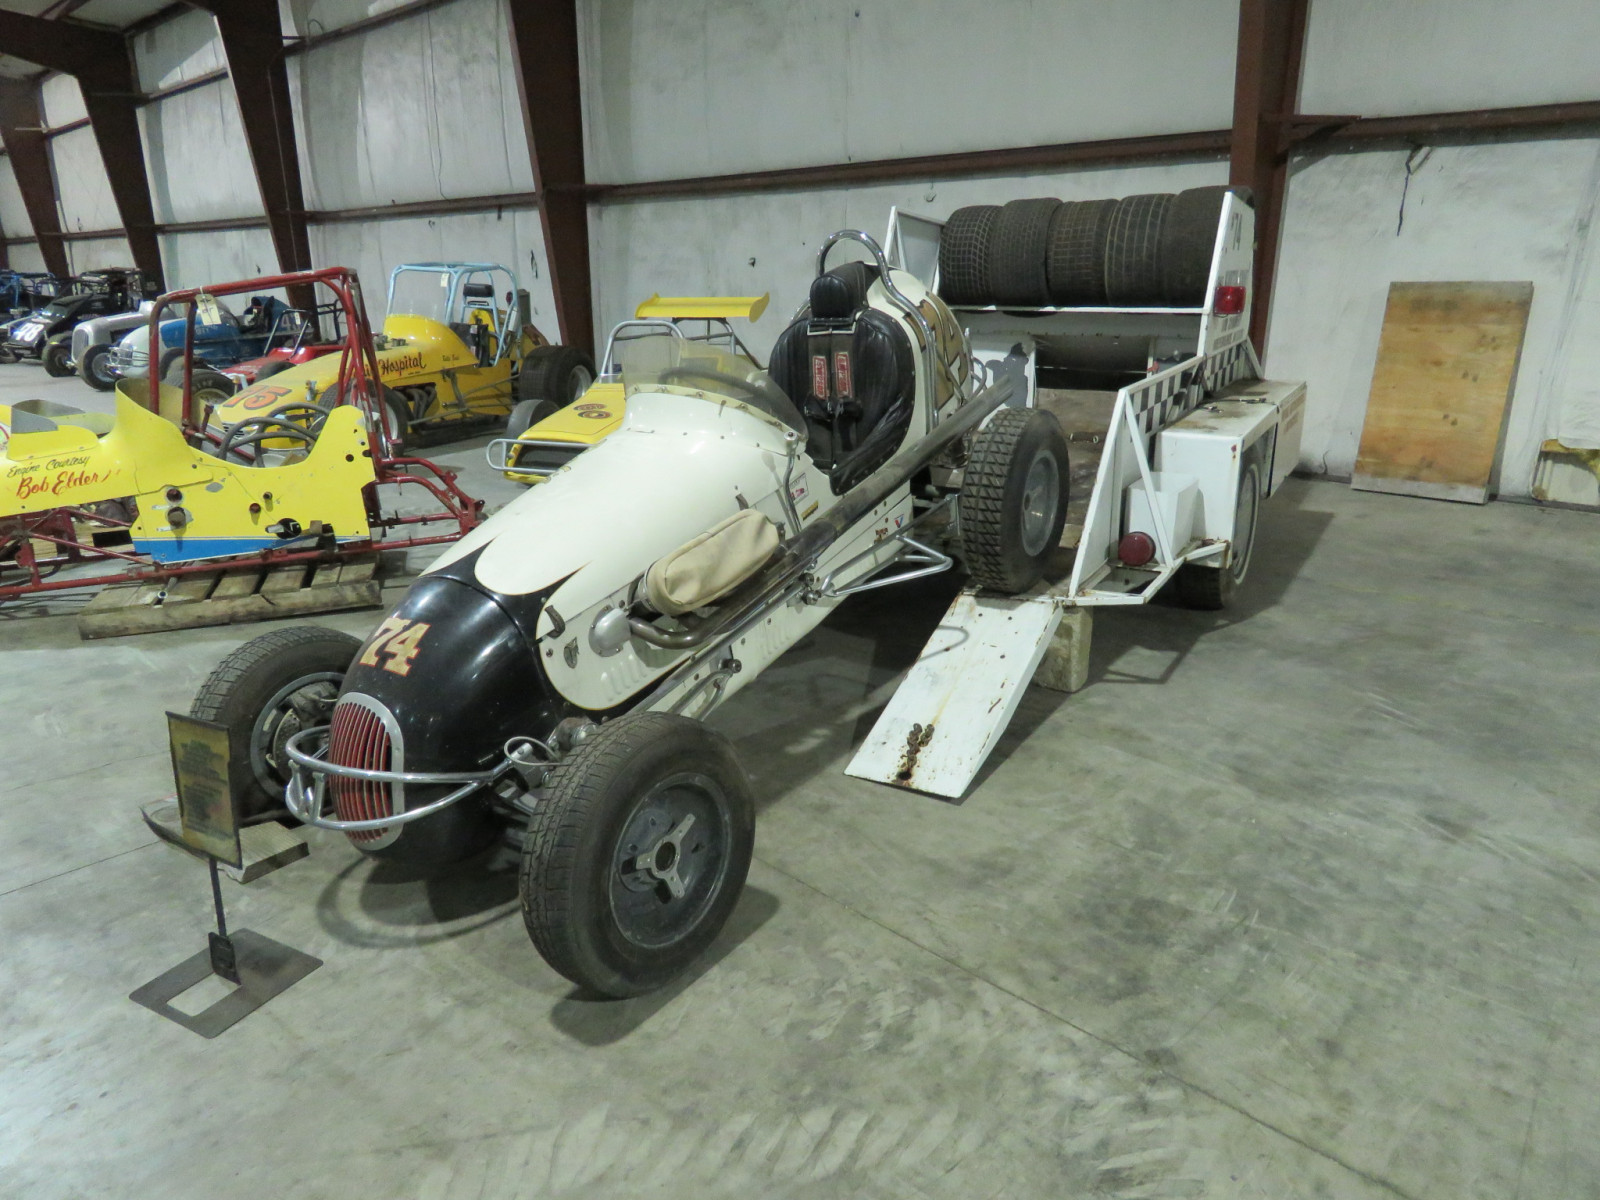 Rare 1947 Kurtis Kraft-Chimnery Midget Racecar and Trailer - Image 21